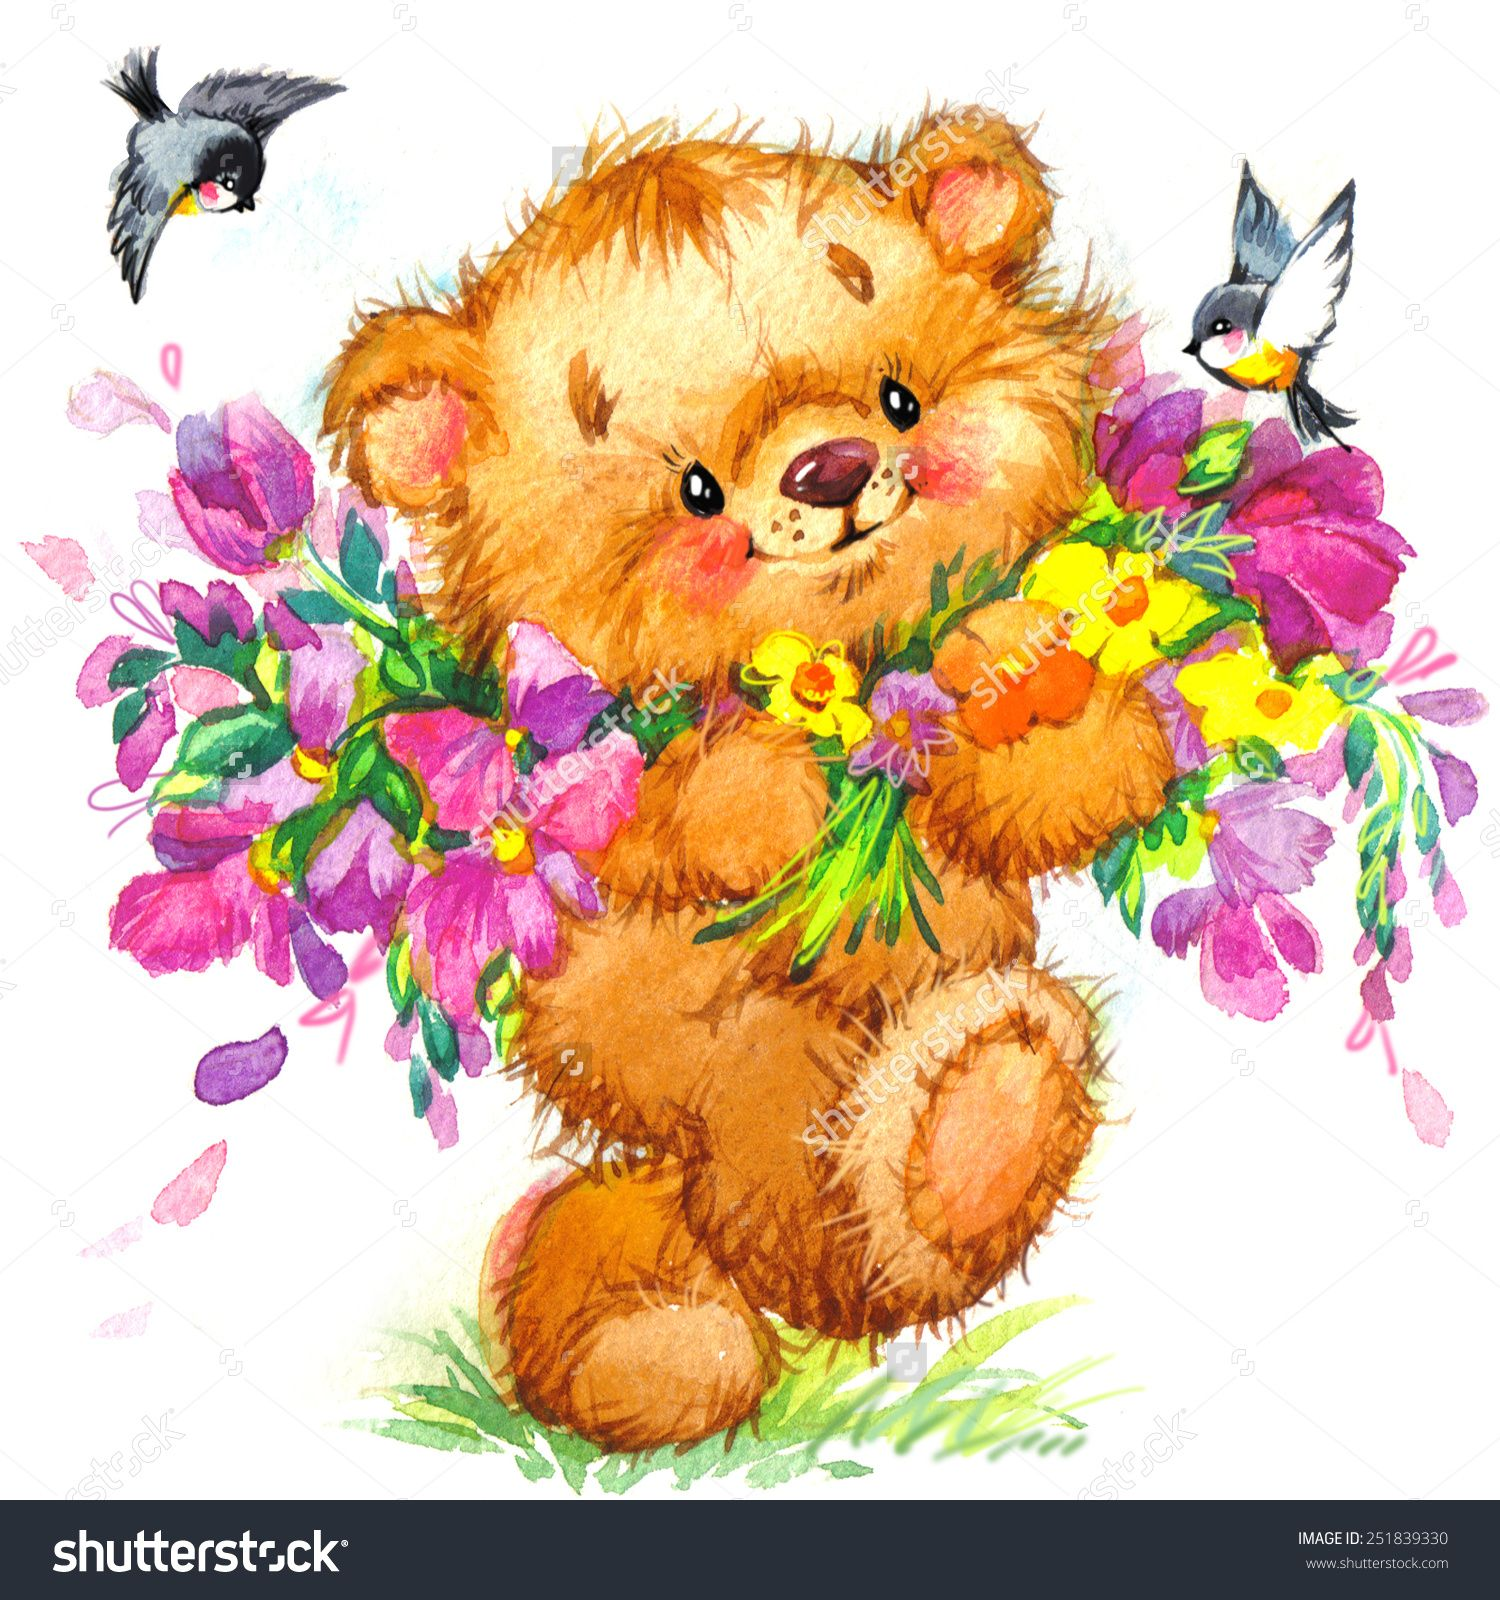 Teddy Bear Holding A Heart Drawing at GetDrawings.com ...